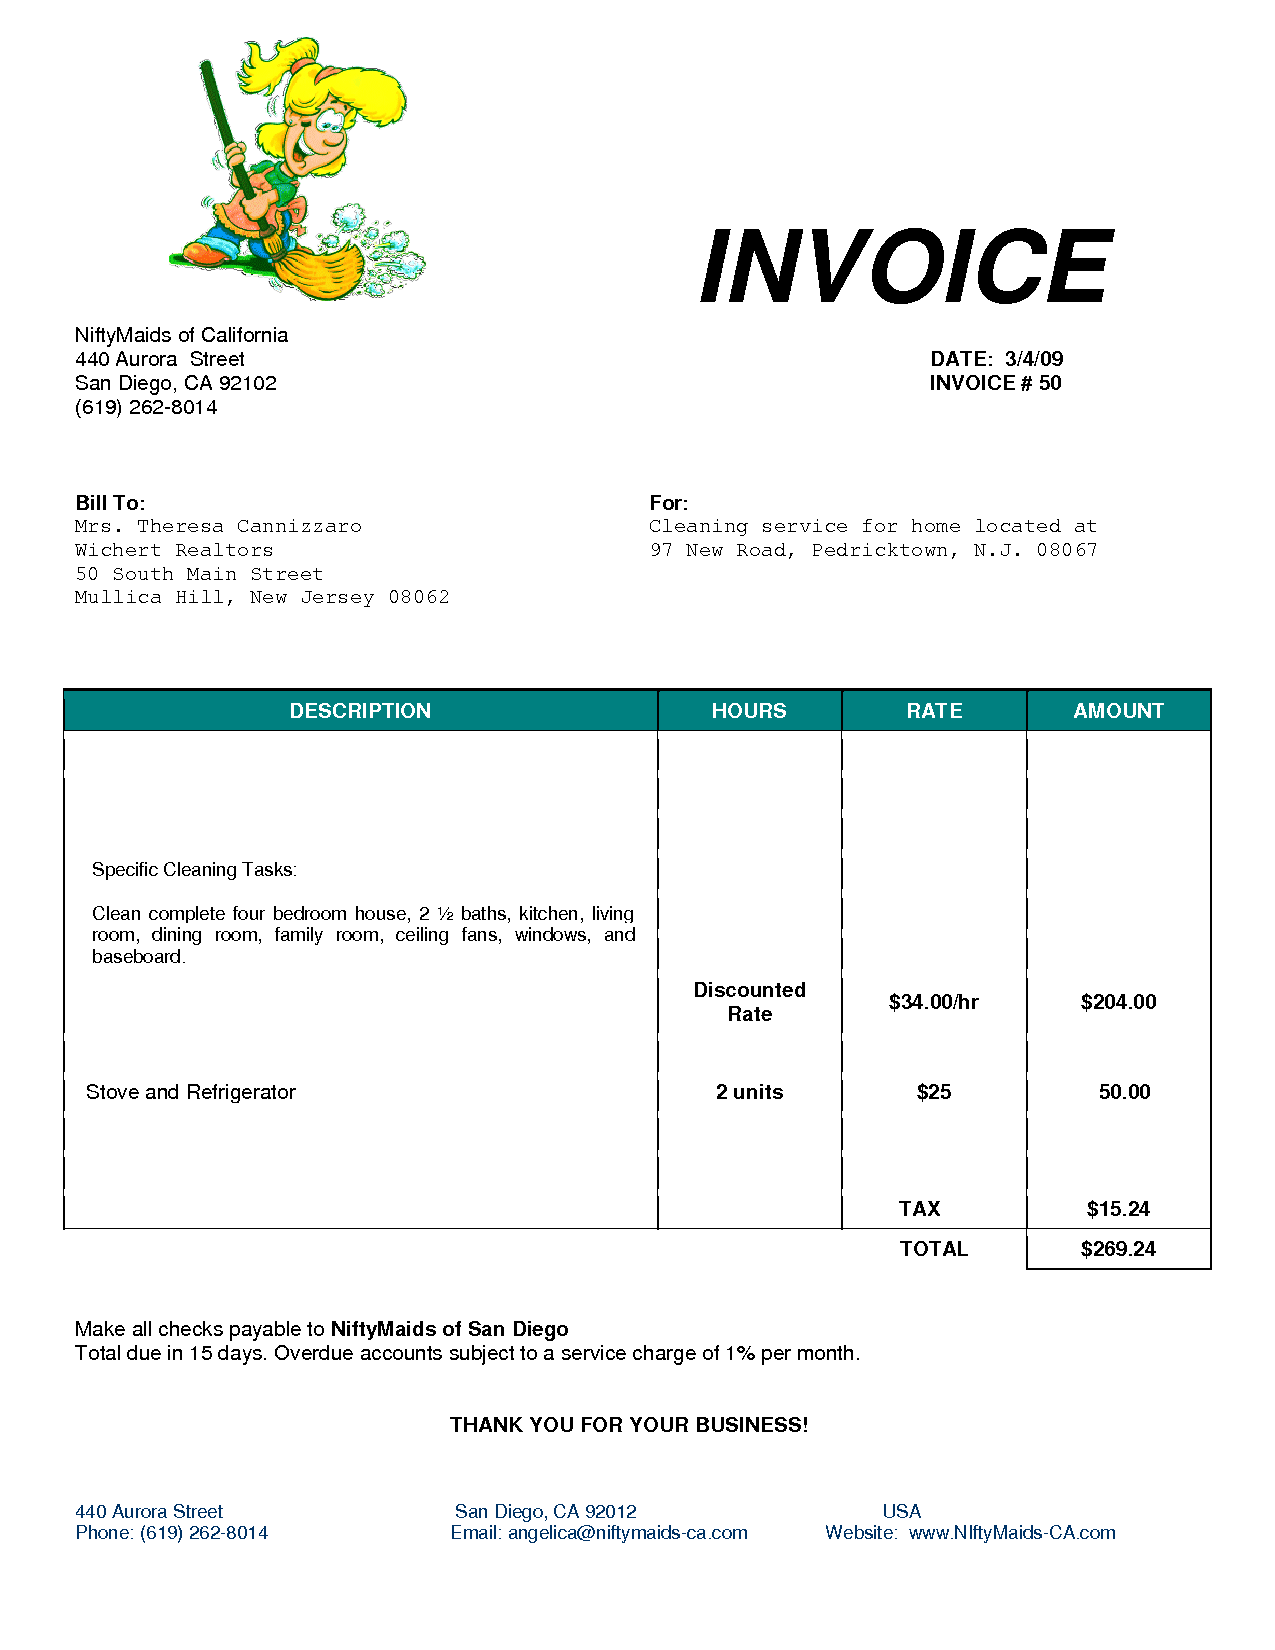 Confirm Receipt Of This Email Word Example Invoice Word Western Union Receipts with Sales Invoice  Definition Of Proforma Invoice Excel